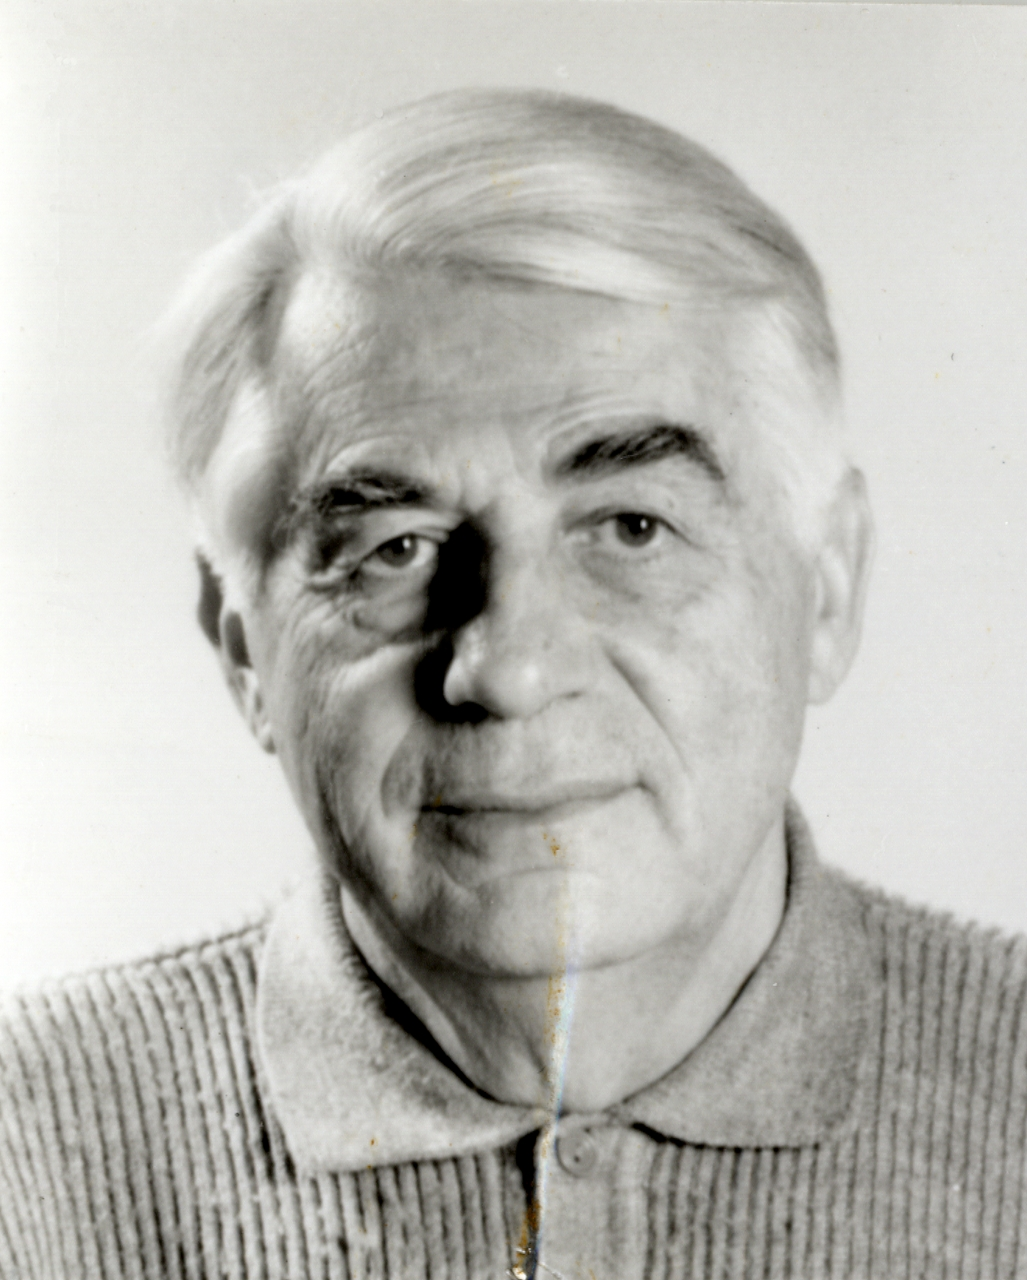 image for Lacassin, Francis (1931-2008)